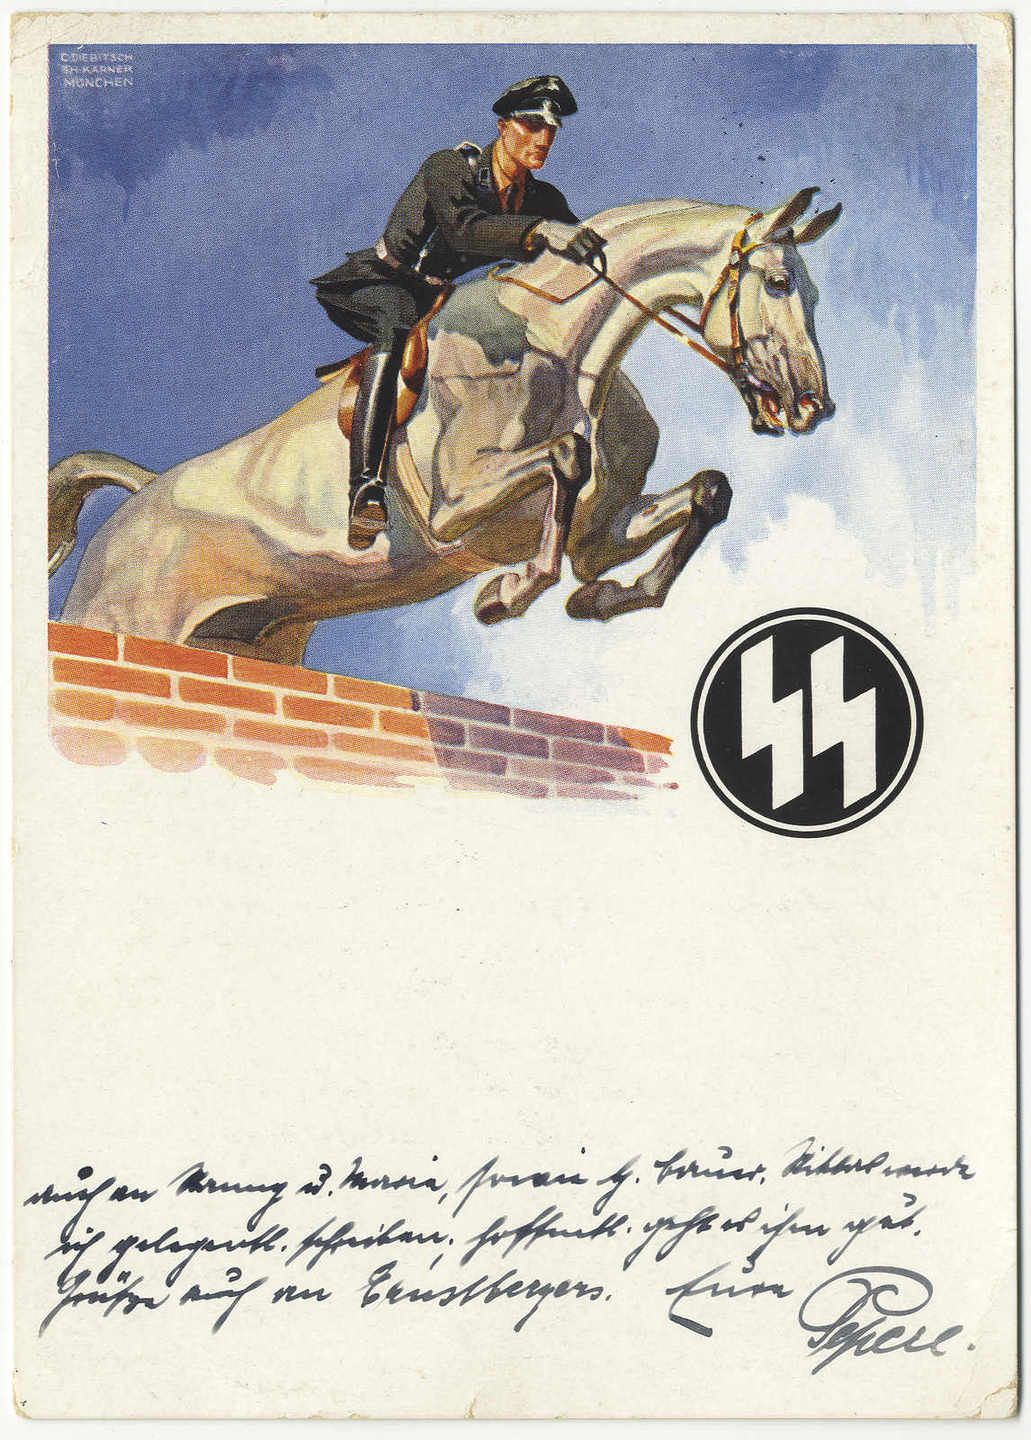 Waffen SS Reiter horse jumping PC. The Real Deal! 10-8-1935 in very good condition. Extremely rare PC!